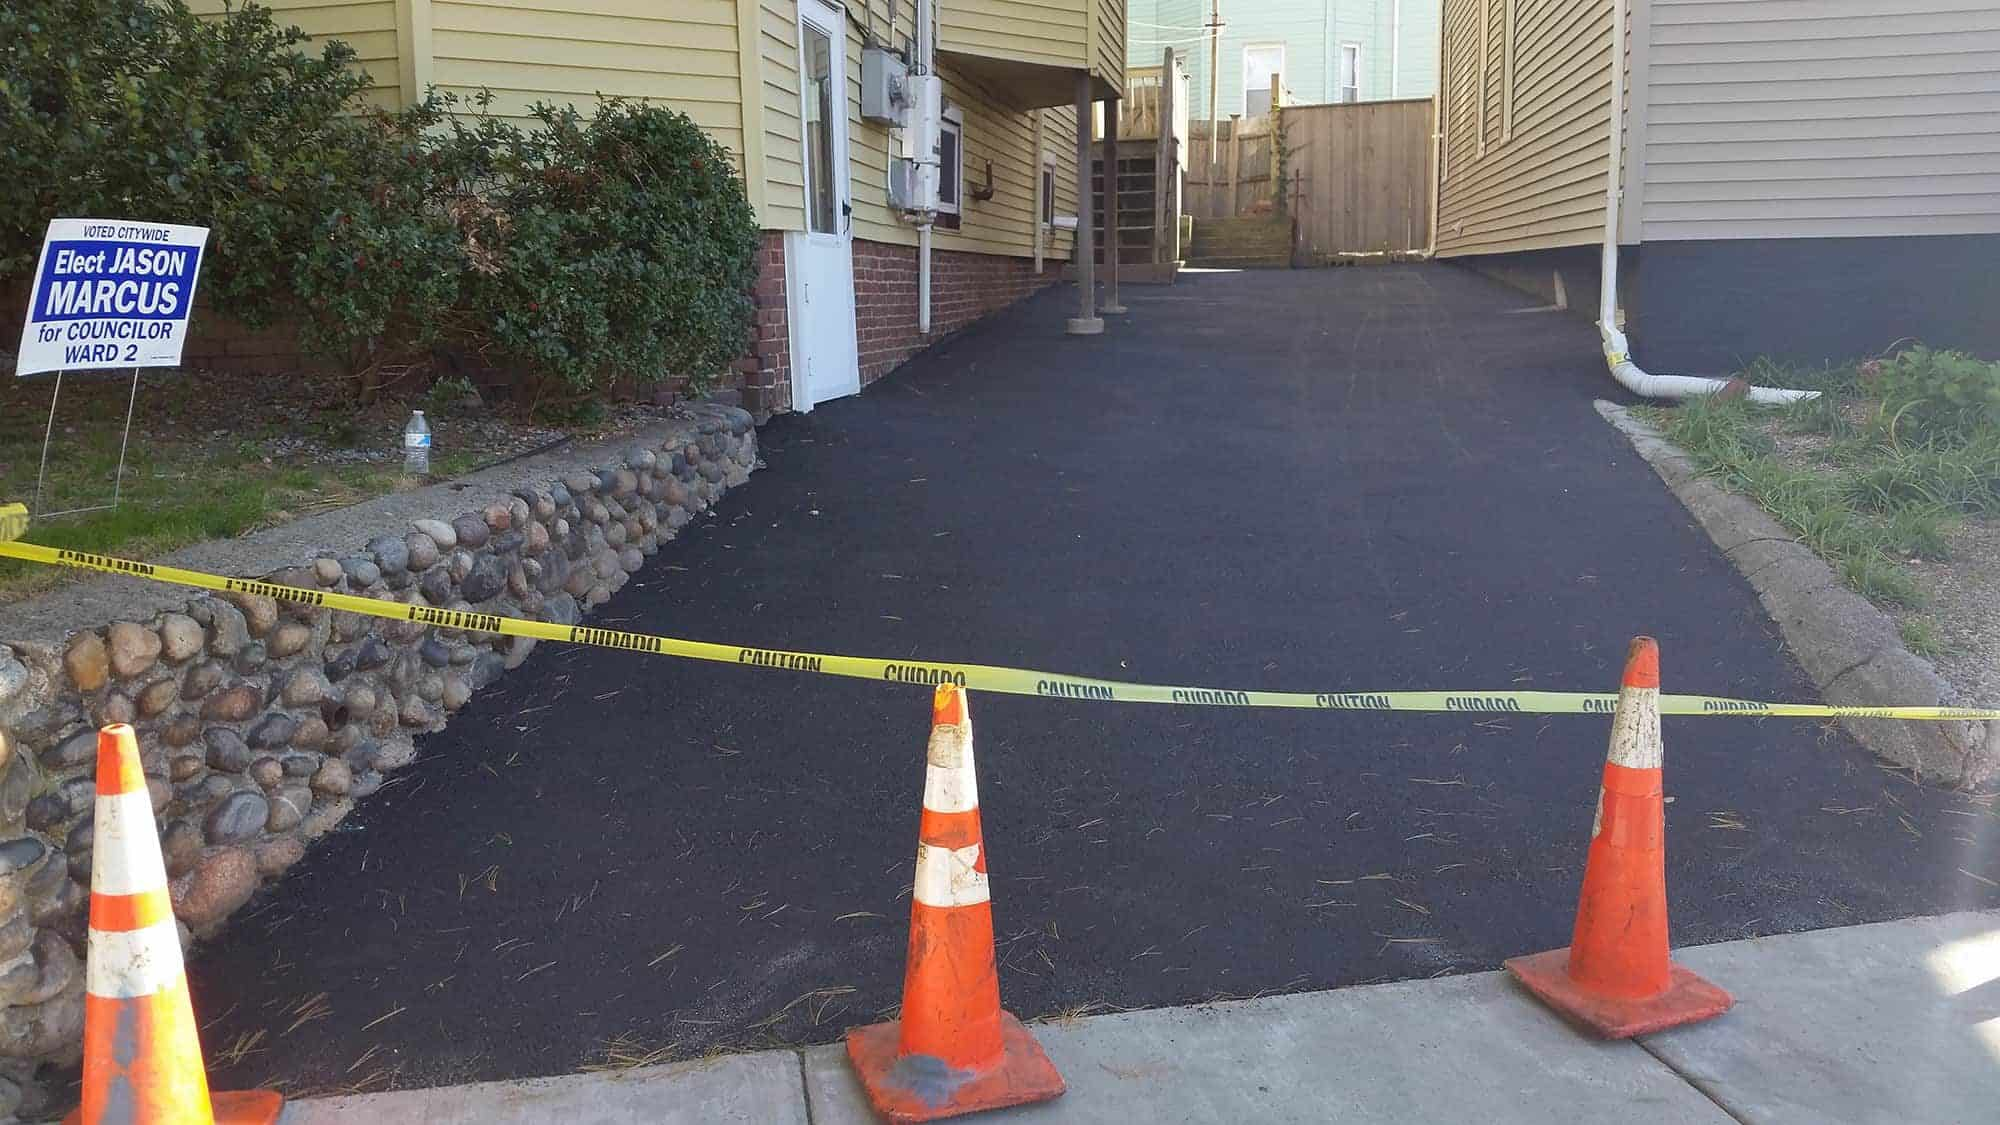 Asphalt Driveway Installation And Repairs  Steve's Services. Accredited Masters Of Public Health Programs. E Commerce Software Comparison. How To Improve The Appearance Of Stretch Marks. Database Marketing Companies. Master In Communication Power Marketing Group. New Geneva Theological Seminary. House Movers Houston Tx Ssrs Developer Salary. Property Management Companies In Northern Virginia